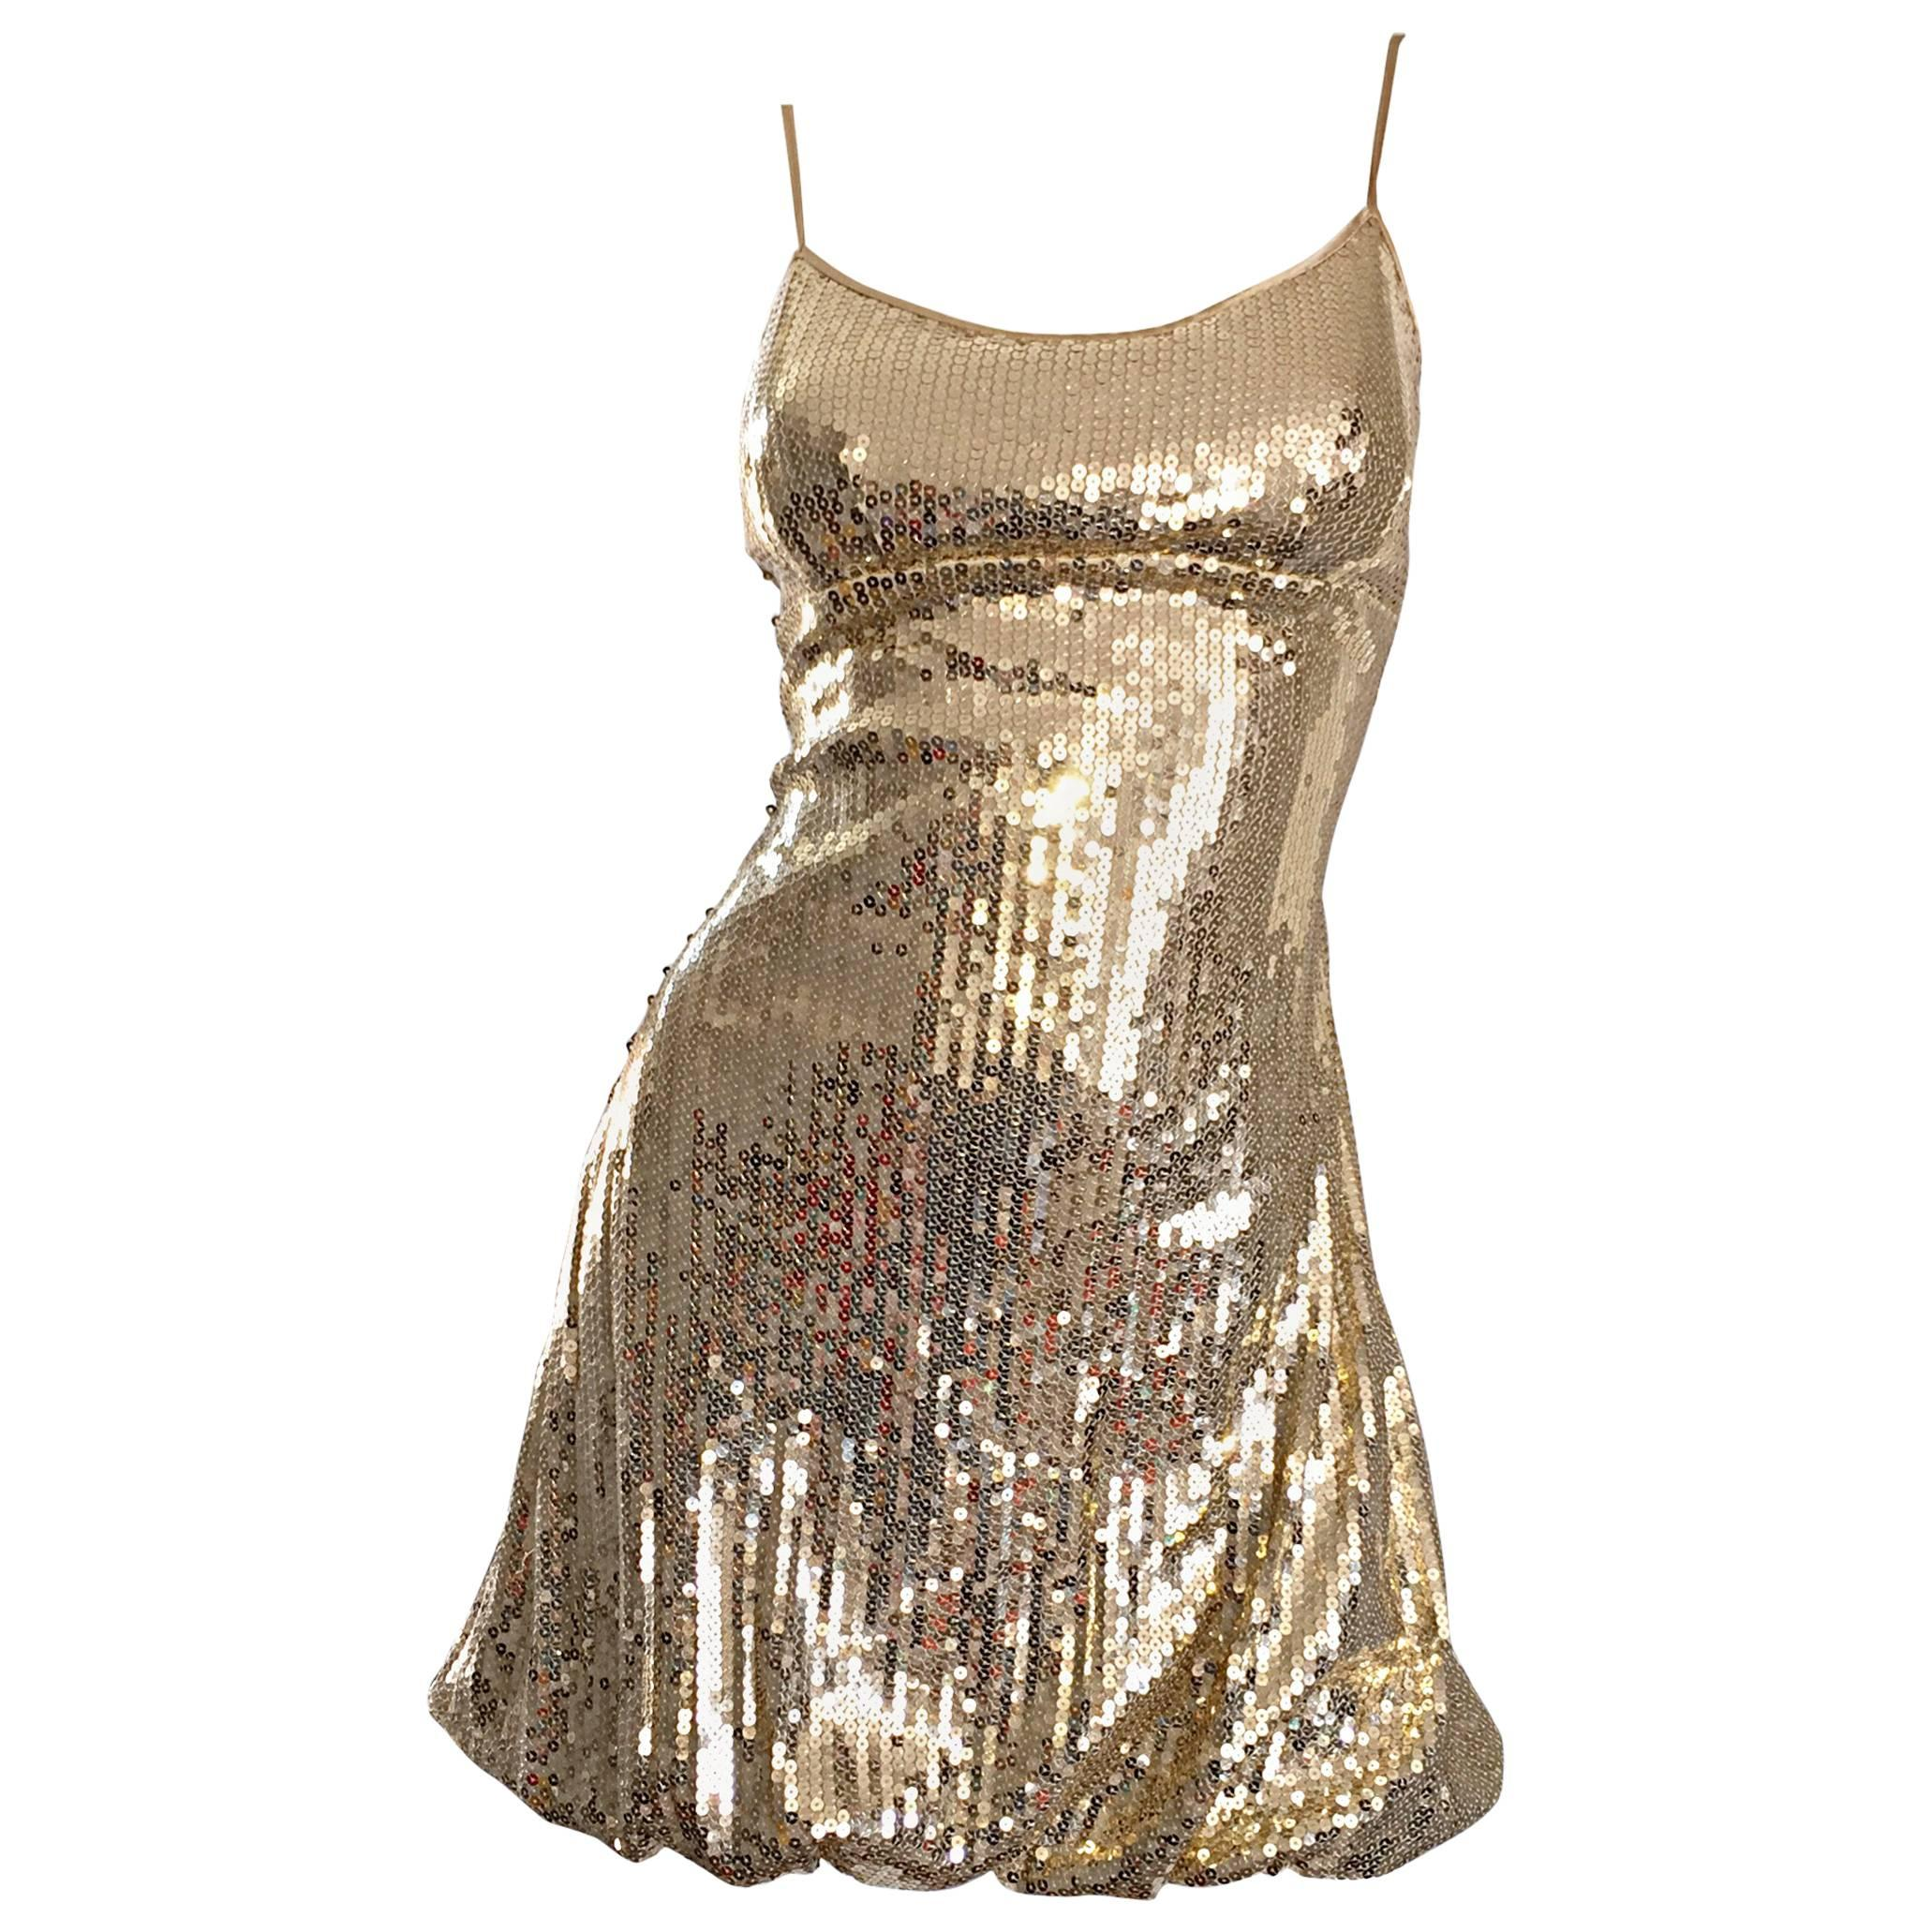 677e5c3f03 Sexy 1990s Vintage Gold Sequin 90s Mini Babydoll Dress Size XS - Small at  1stdibs